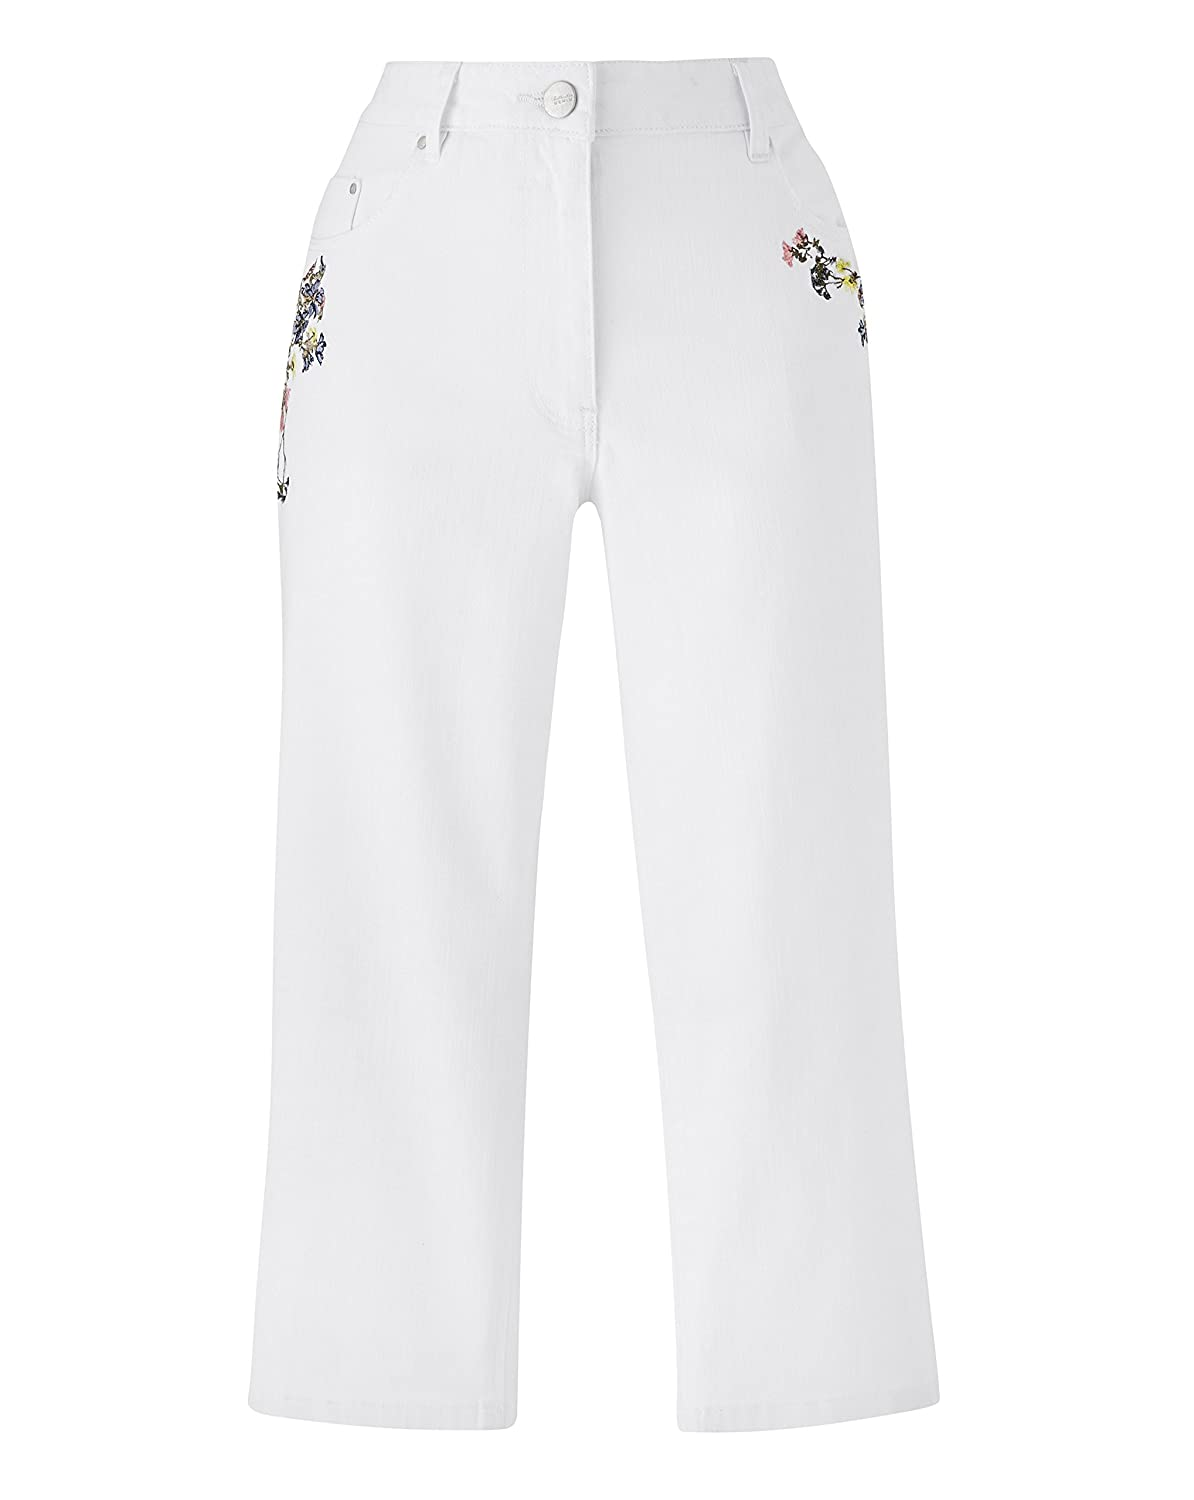 Womens Embroidered Crop Jeans JD Williams